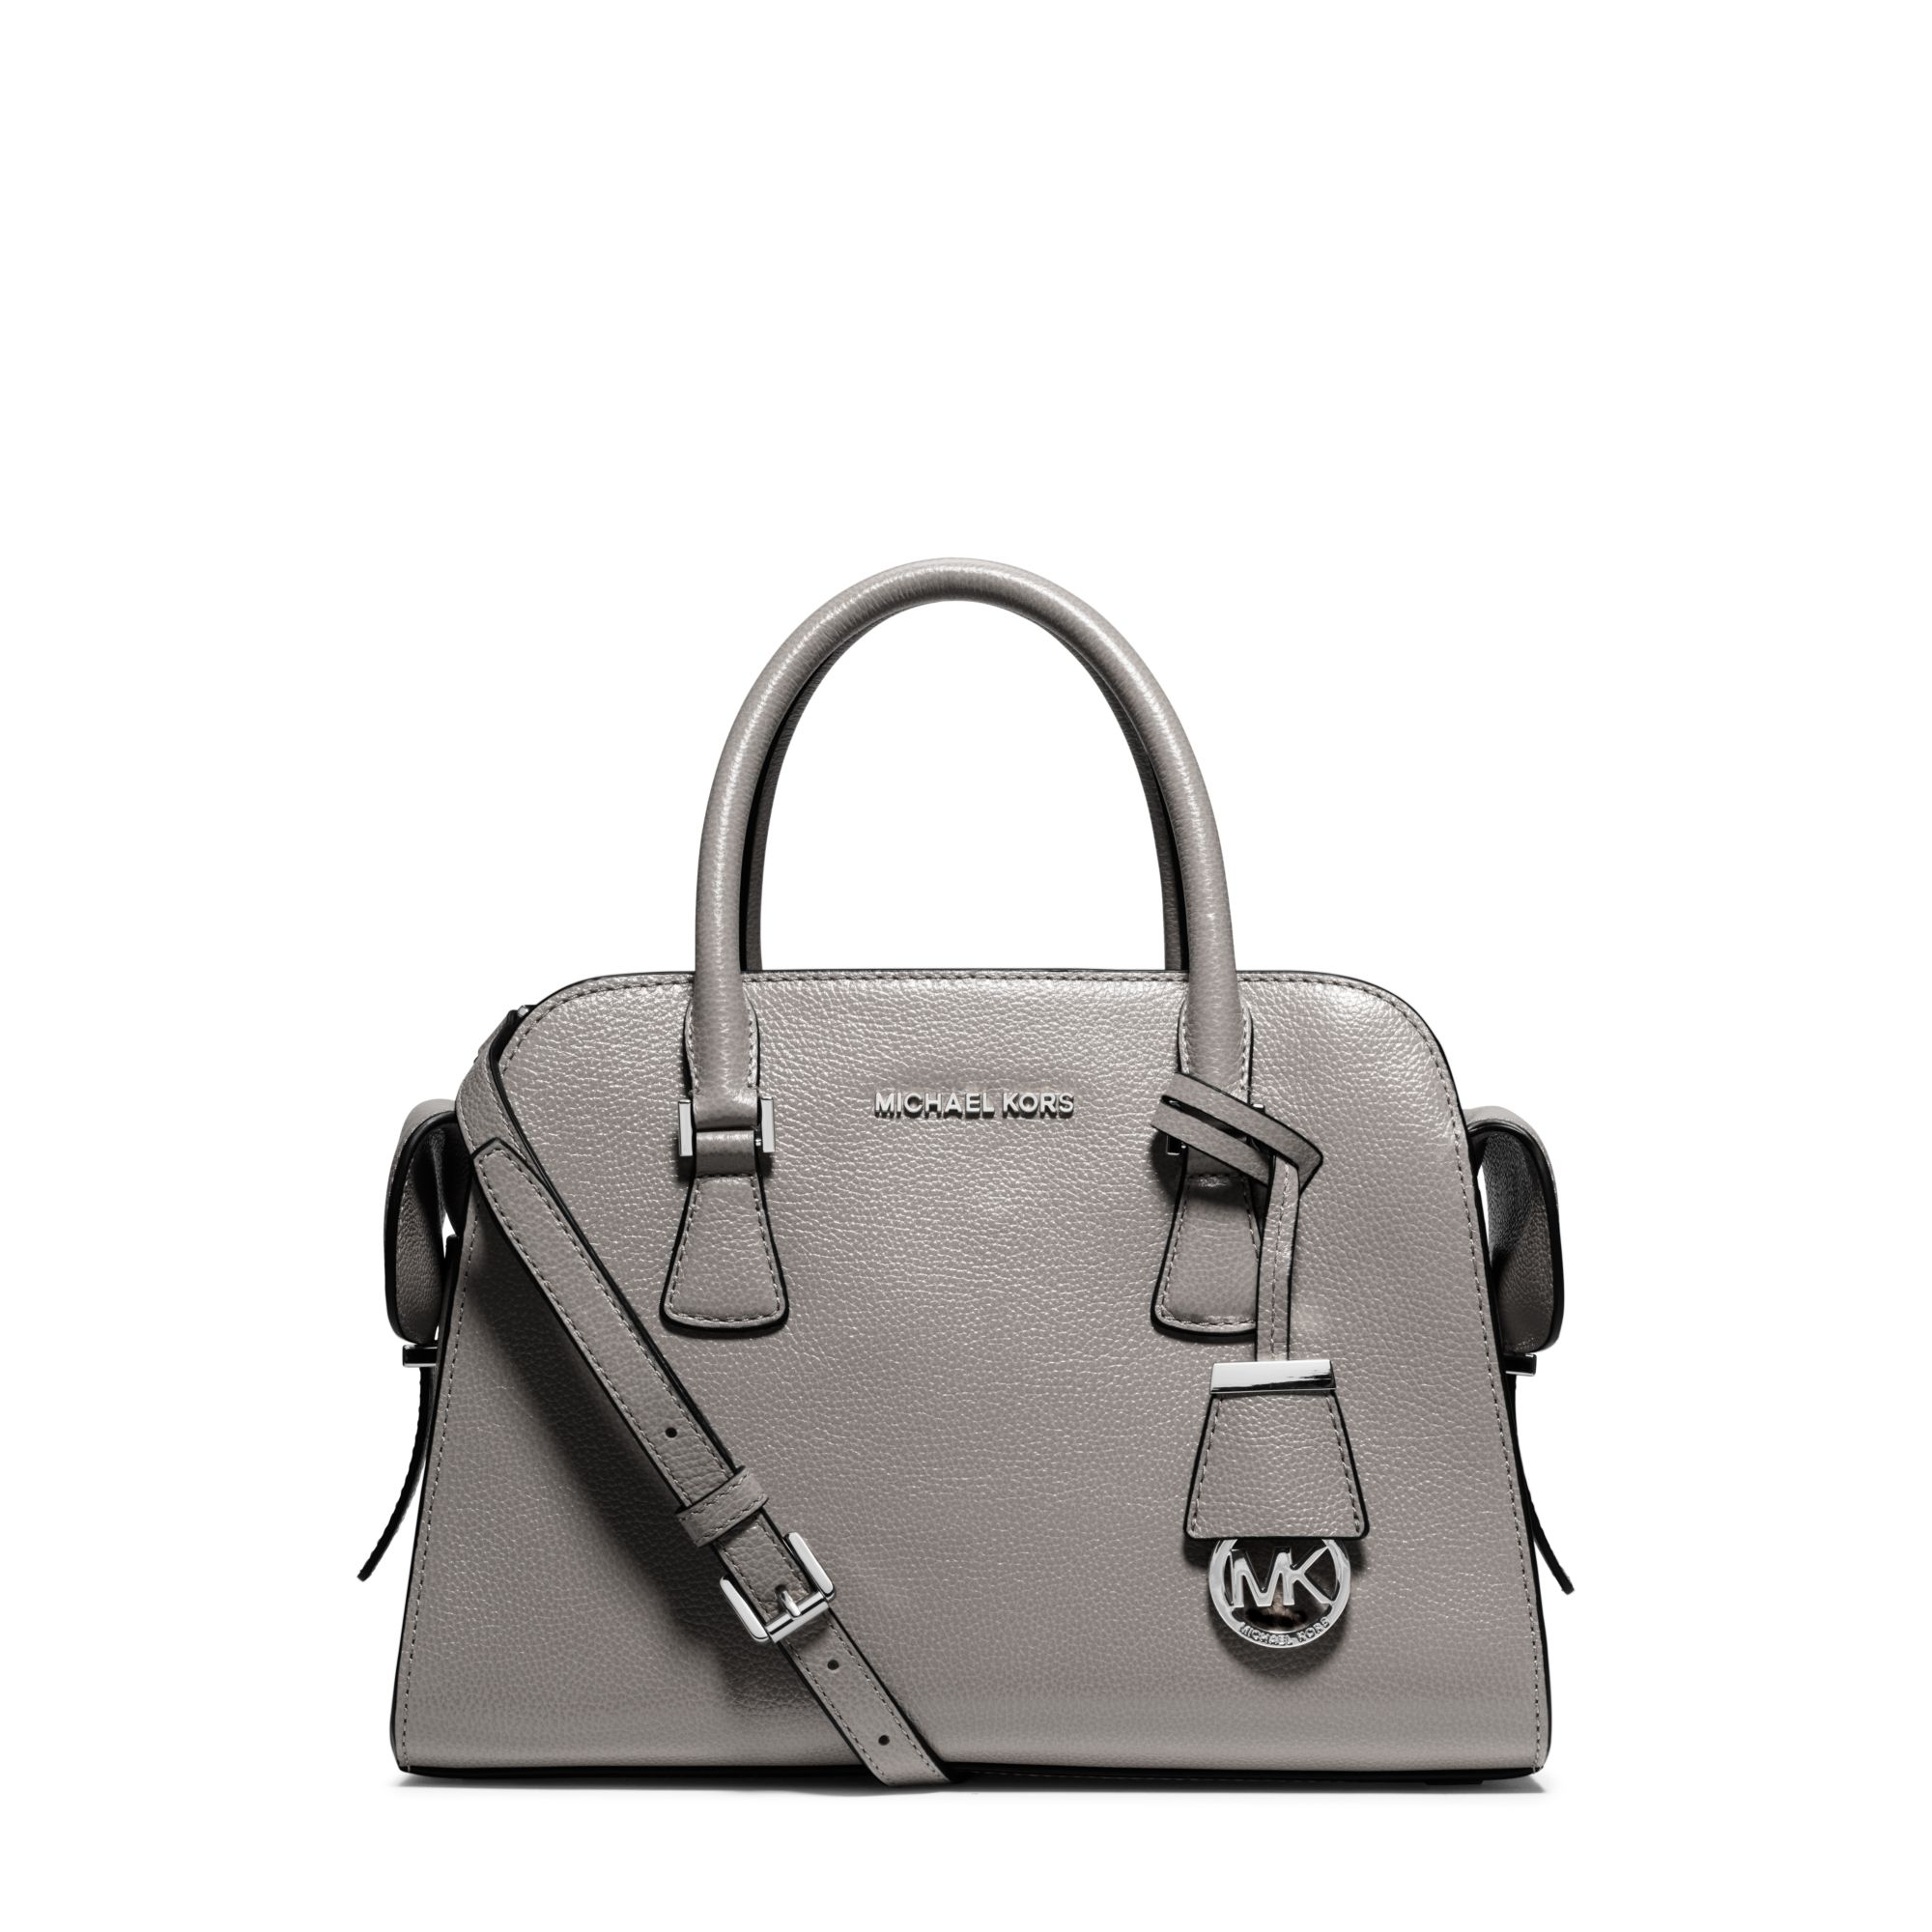 9a7978fae303 Lyst - Michael Kors Harper Medium Leather Satchel in Gray